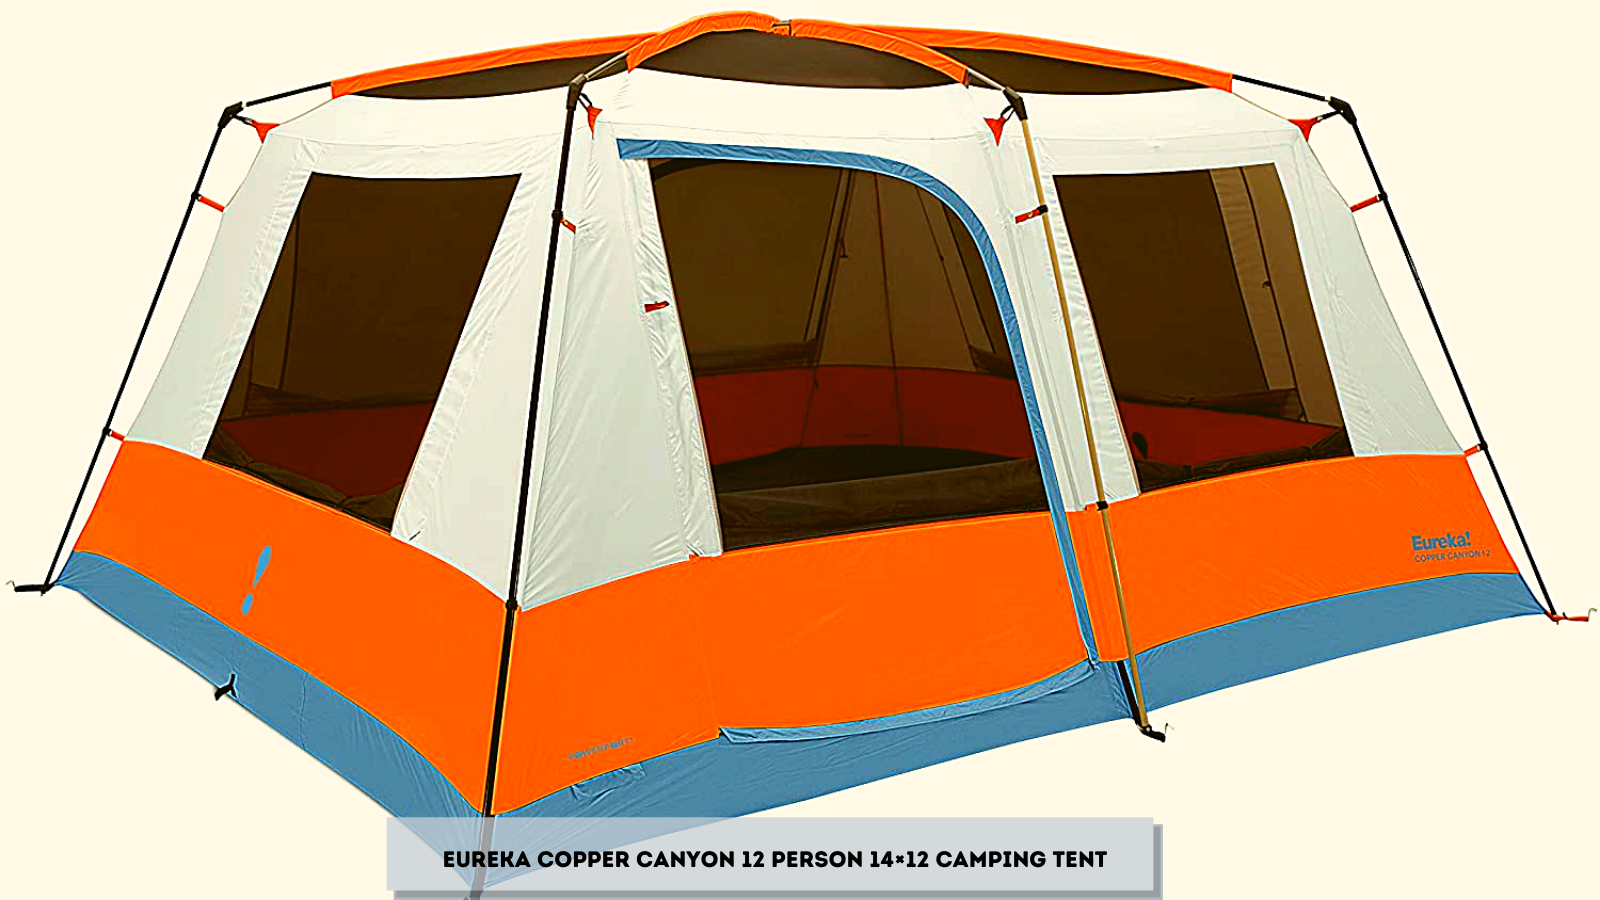 Eureka Copper Canyon 12 Person 14×12 Camping Tent